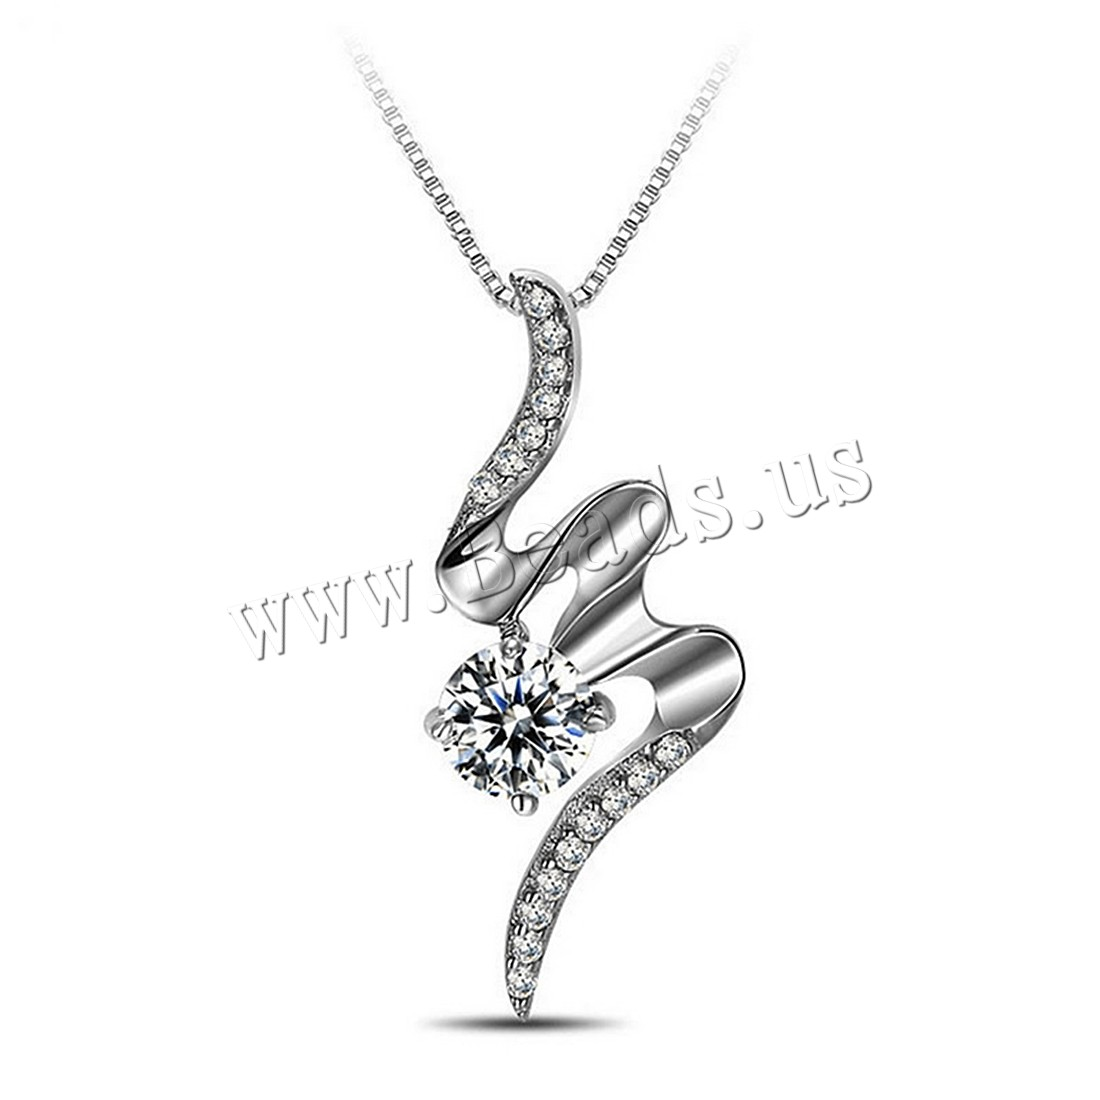 Buy Cubic Zircon Micro Pave 925 Sterling Silver Necklace platinum plated box chain & micro pave cubic zirconia & woman 10x18mm Sold Per Approx 17.5 Inch Strand